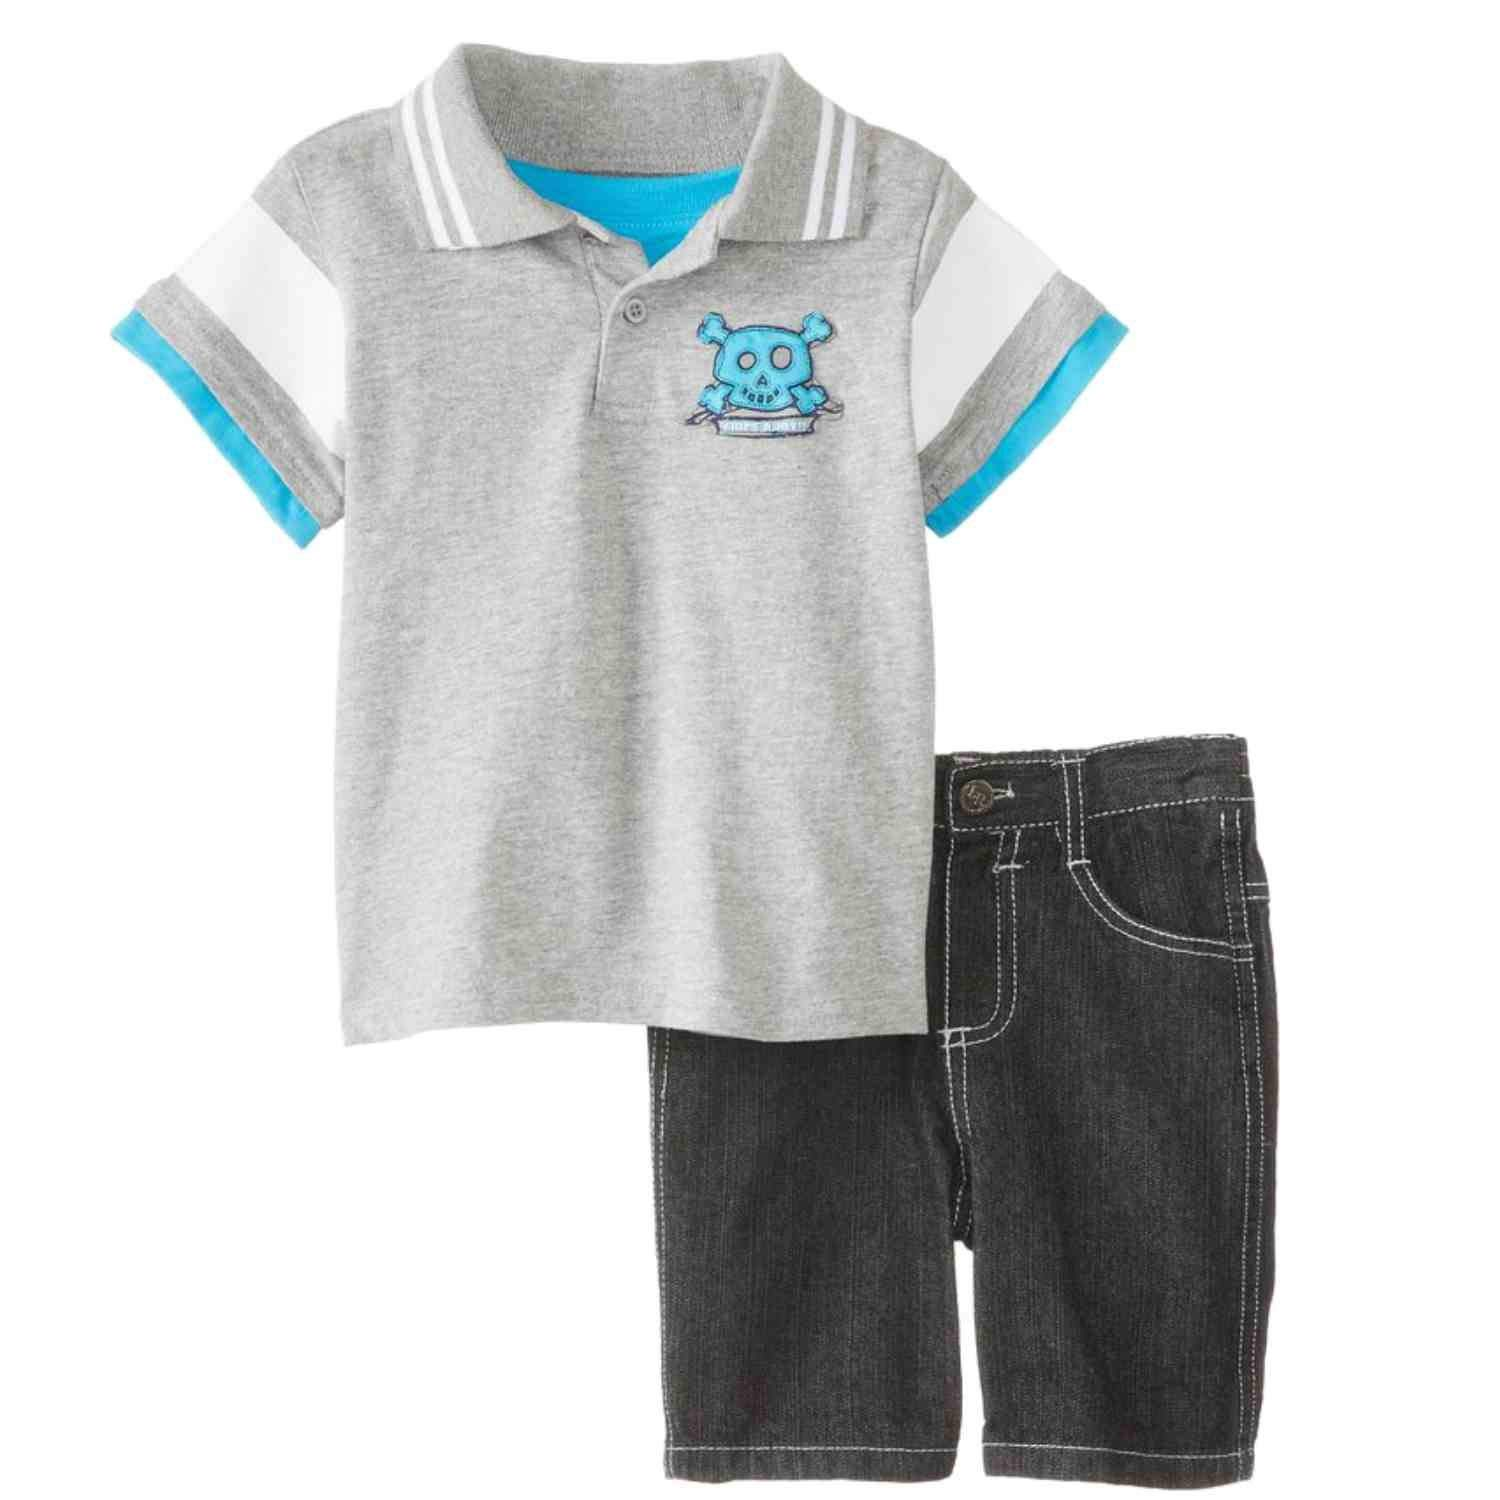 c1e554fa Get Quotations · Little Rebels Infant Boys 2 Piece Pirate Ship Polo T-Shirt  & Denim Shorts